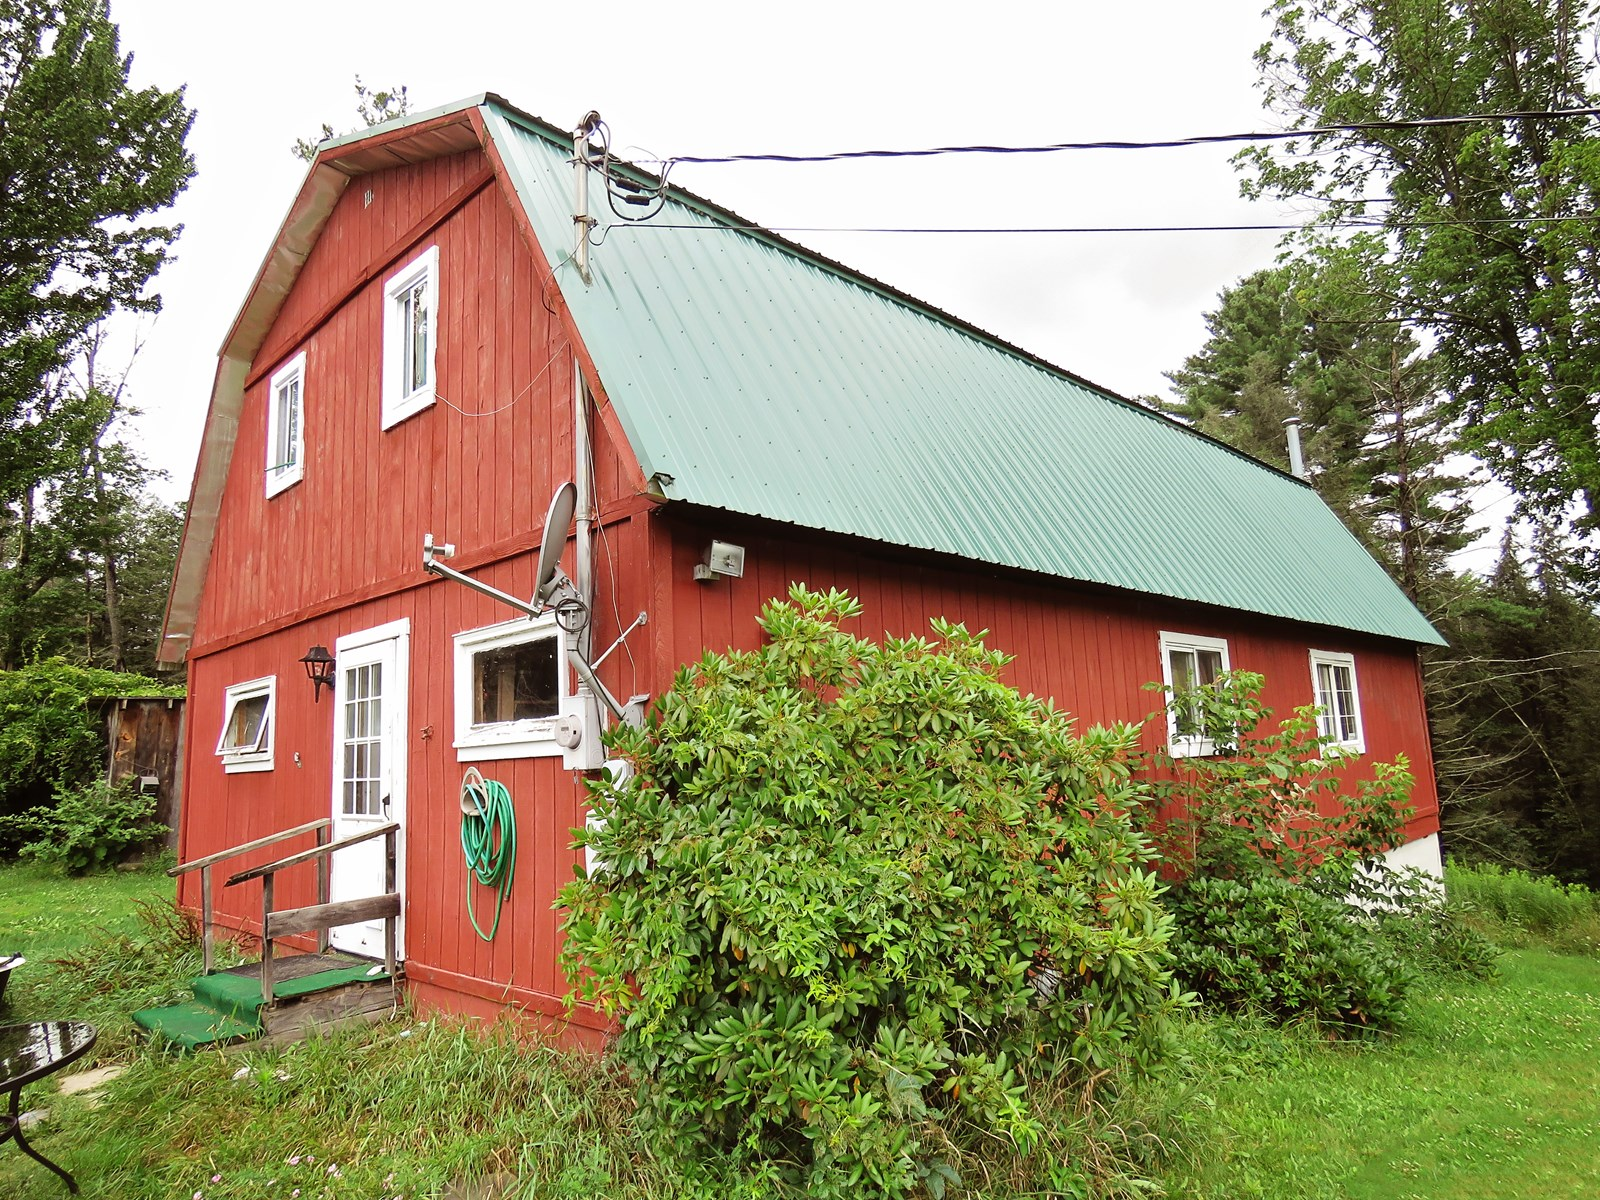 Secluded Country Home on 46+ Wooded Acres For Sale Tioga PA